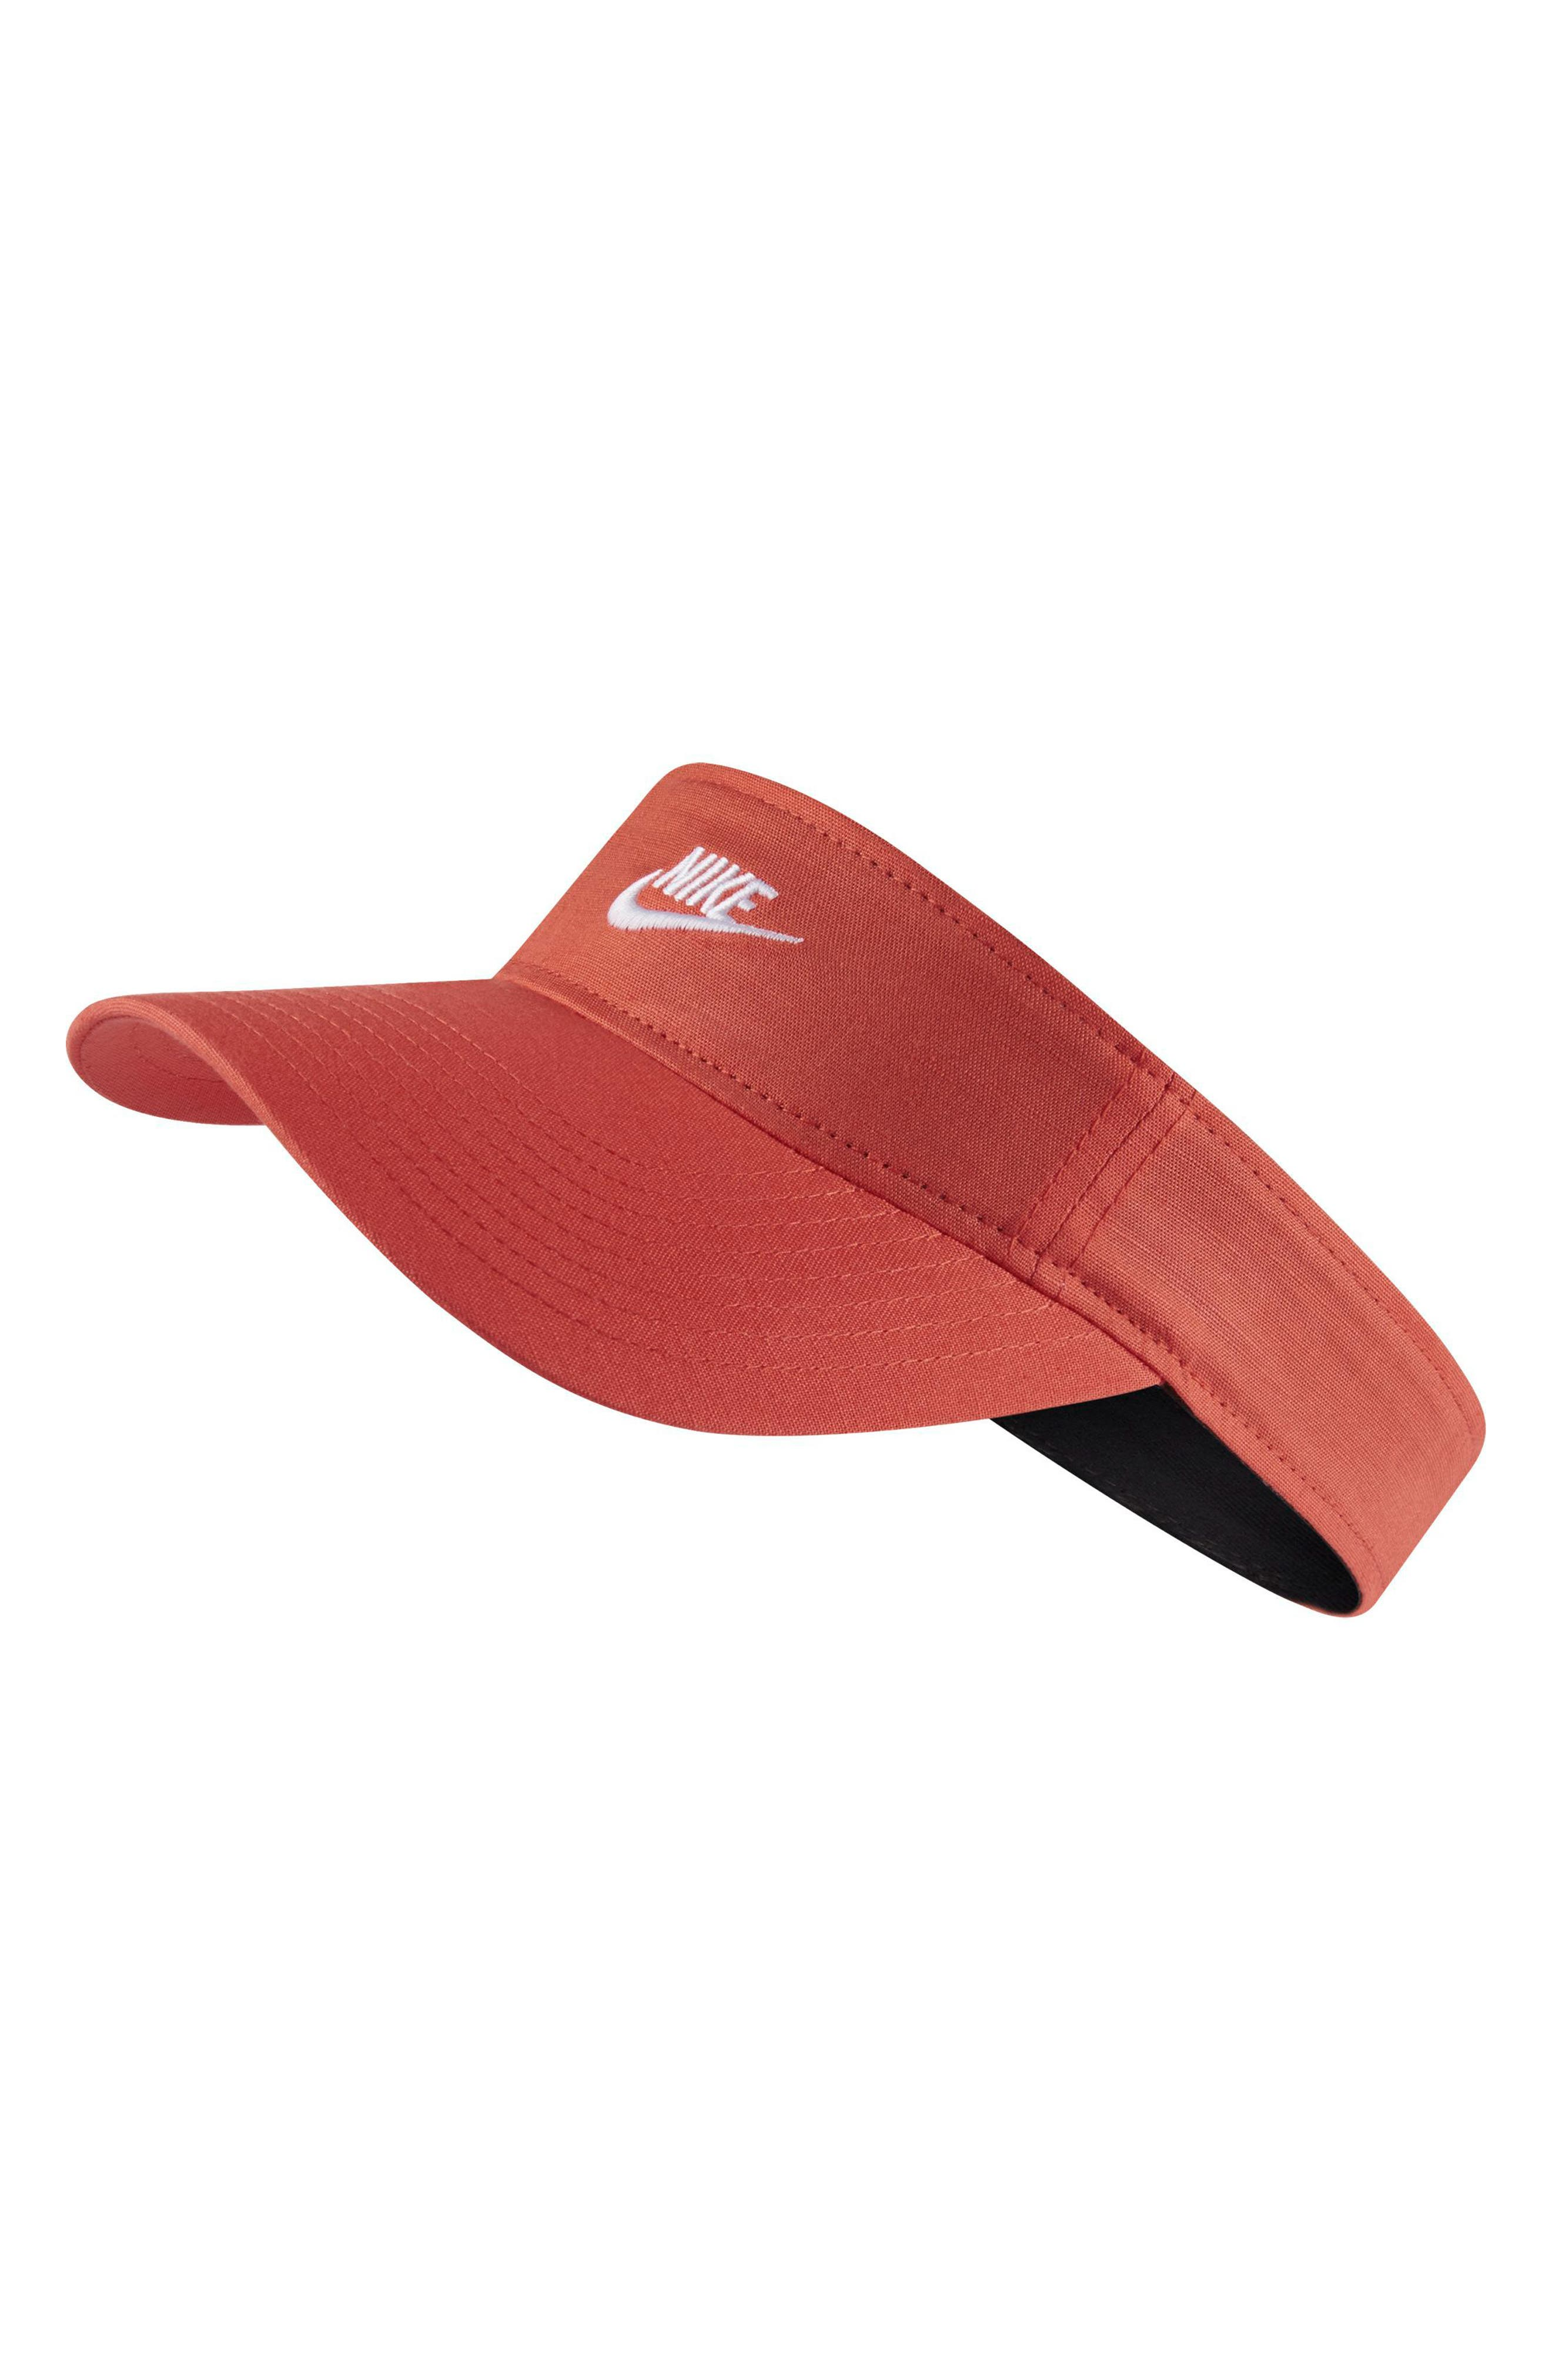 Sportswear Women's Dri-FIT Visor,                         Main,                         color, 600